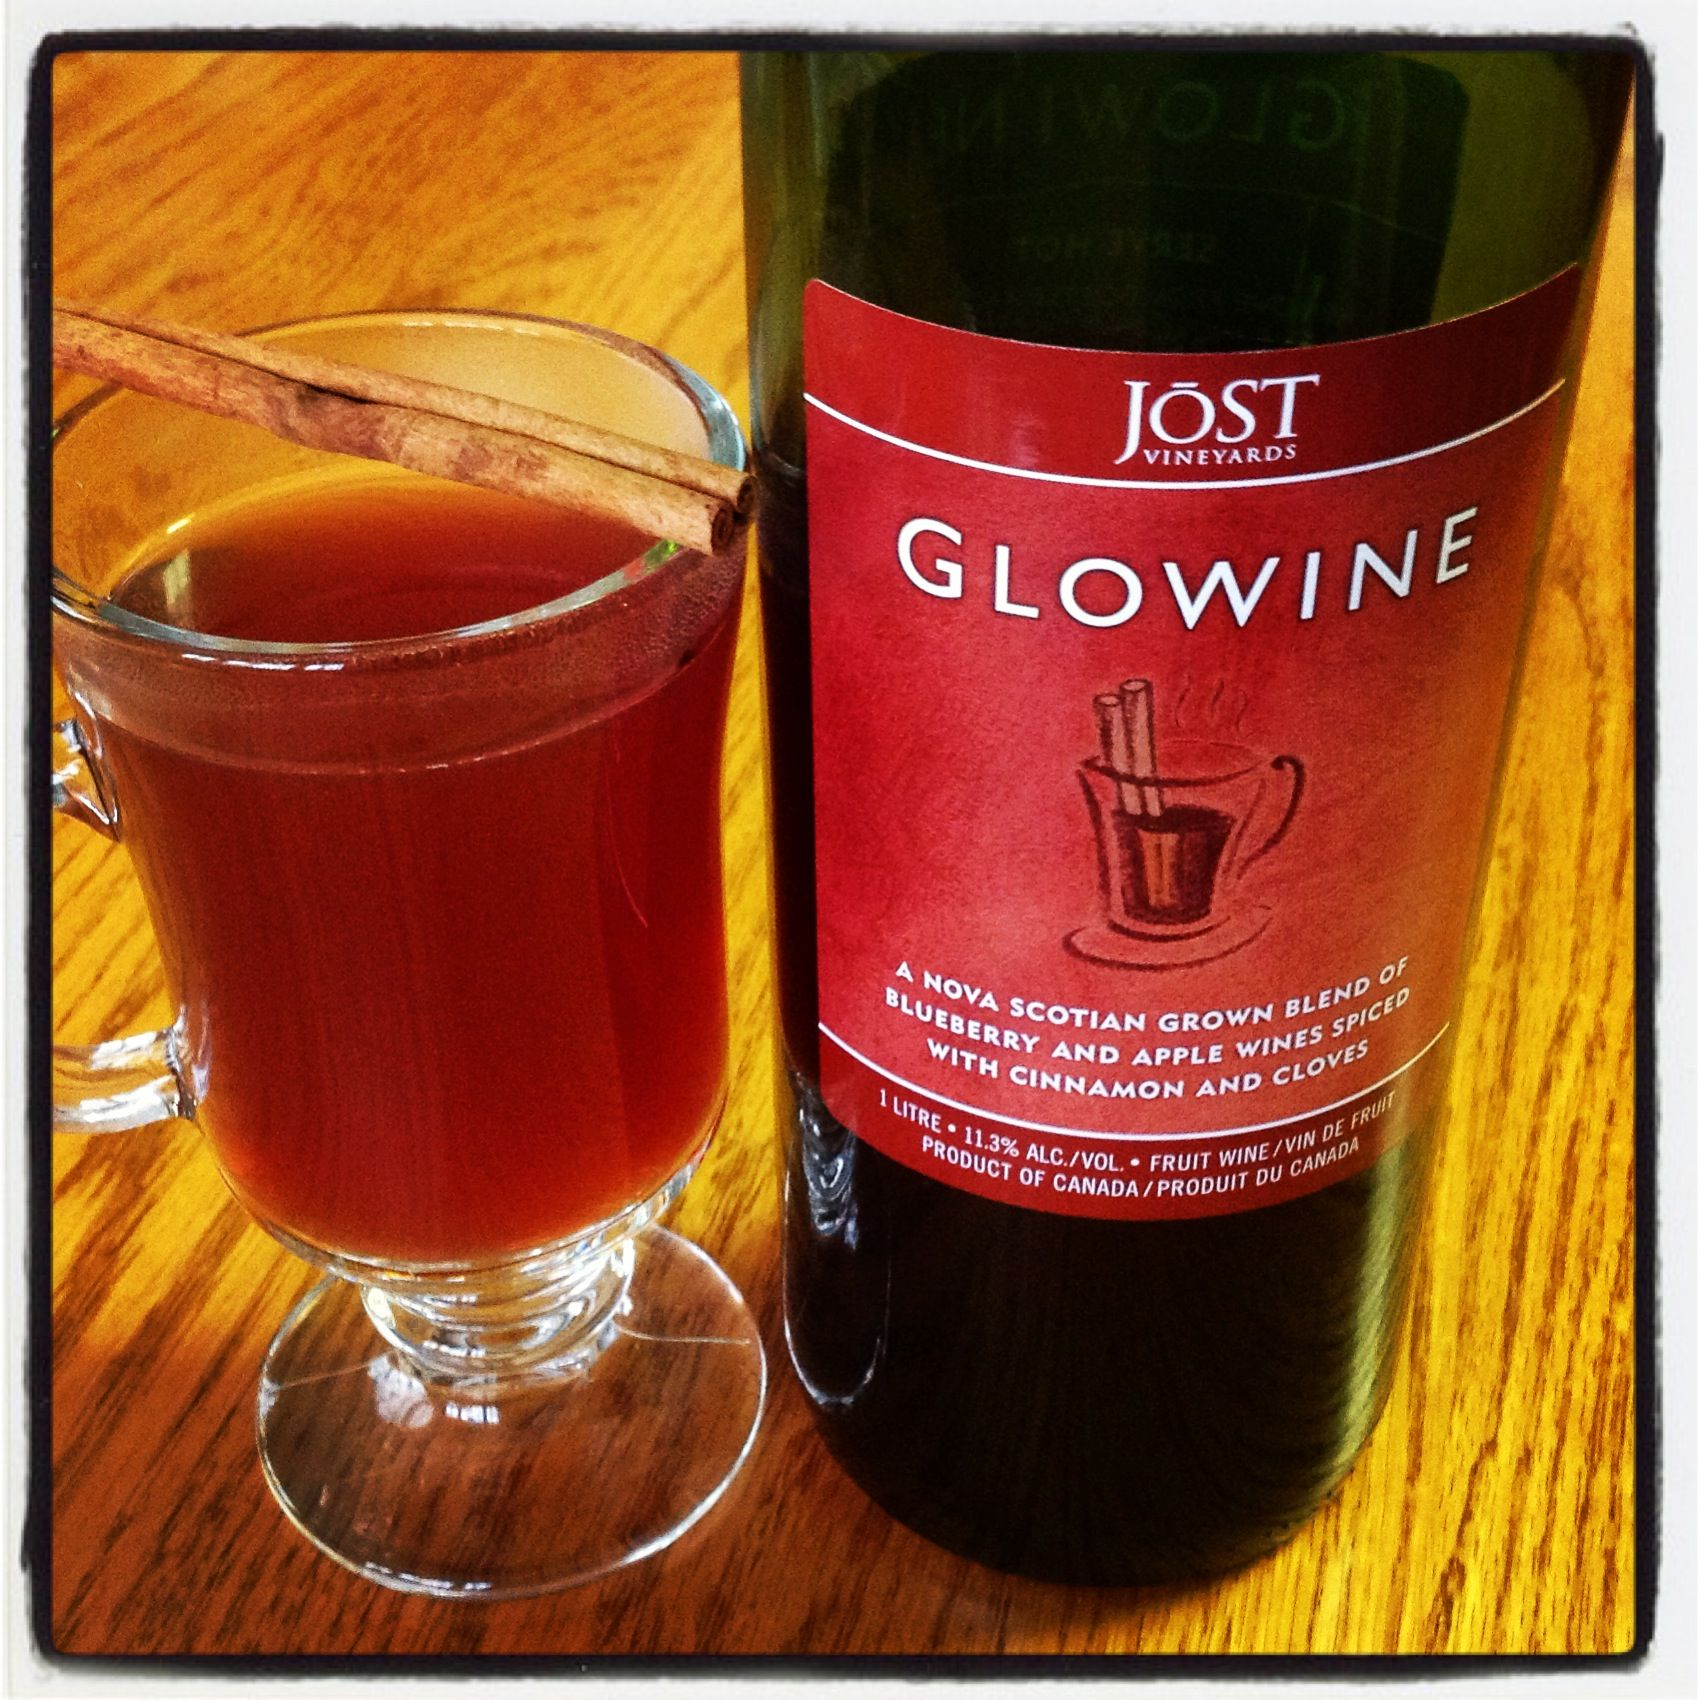 Love Glowine Mixing Equal Parts Of Local Organic Apple Cider With Jost Vineyards Glowine Brought To A Simmer Apple Wine Organic Apple Cider Mulling Spices